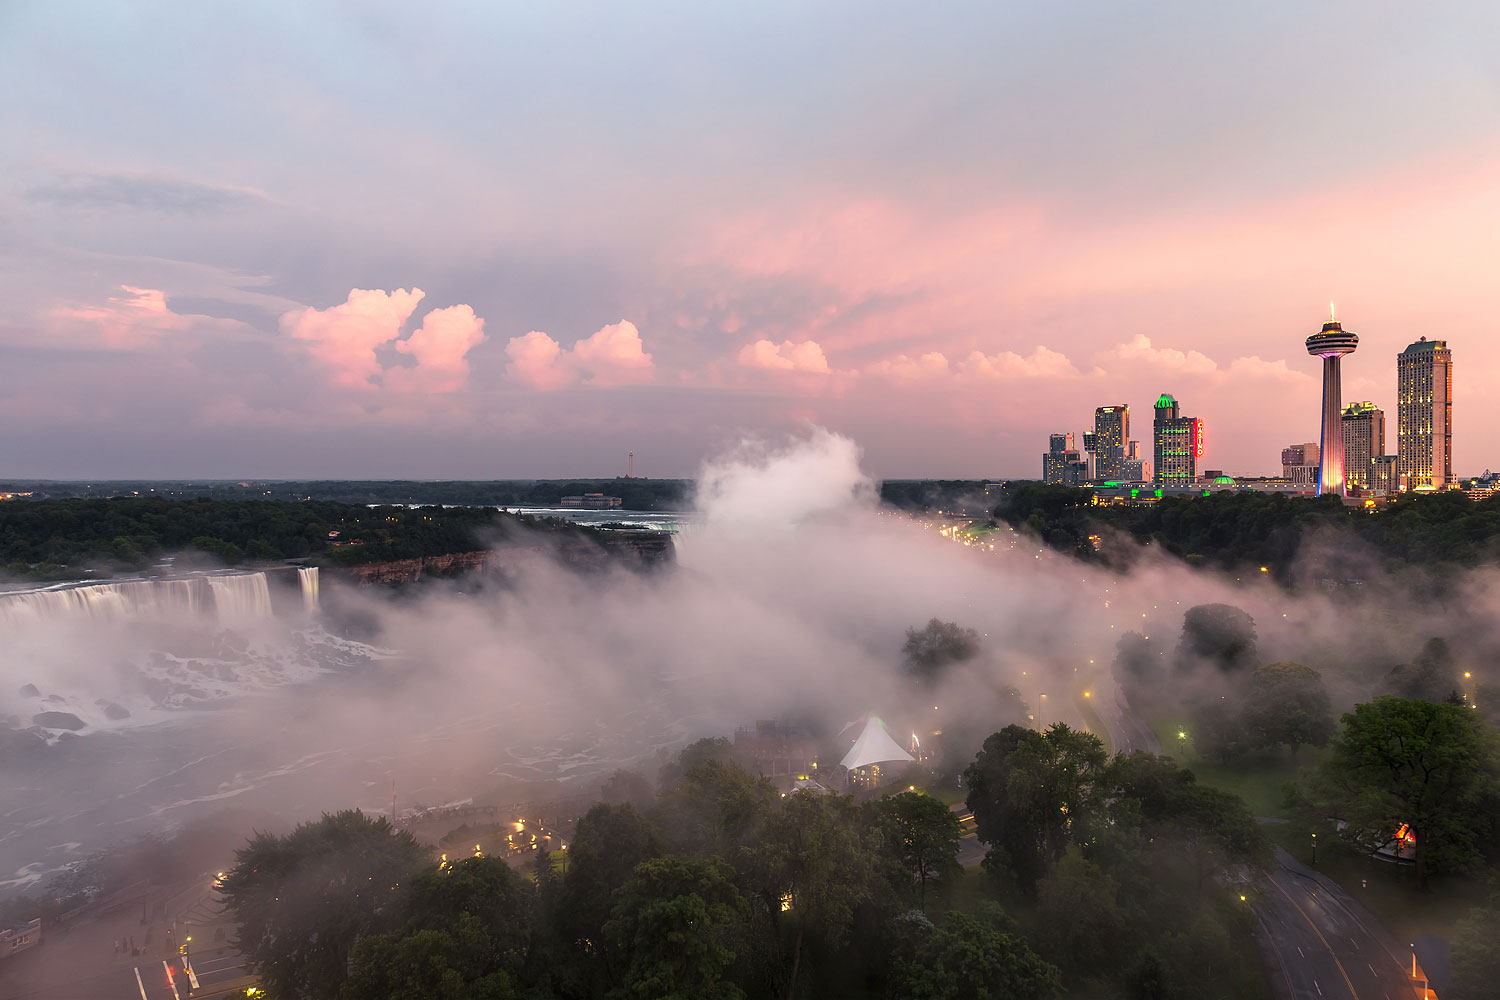 Panorama of Niagara Falls at Twilight, Canada / United States. View from the Canadian side, on left: the American Falls, in the center: the Canadian Falls (a.k.a. Horseshoe Falls), on the right: the skyline of the town Niagara Falls, Ontario.